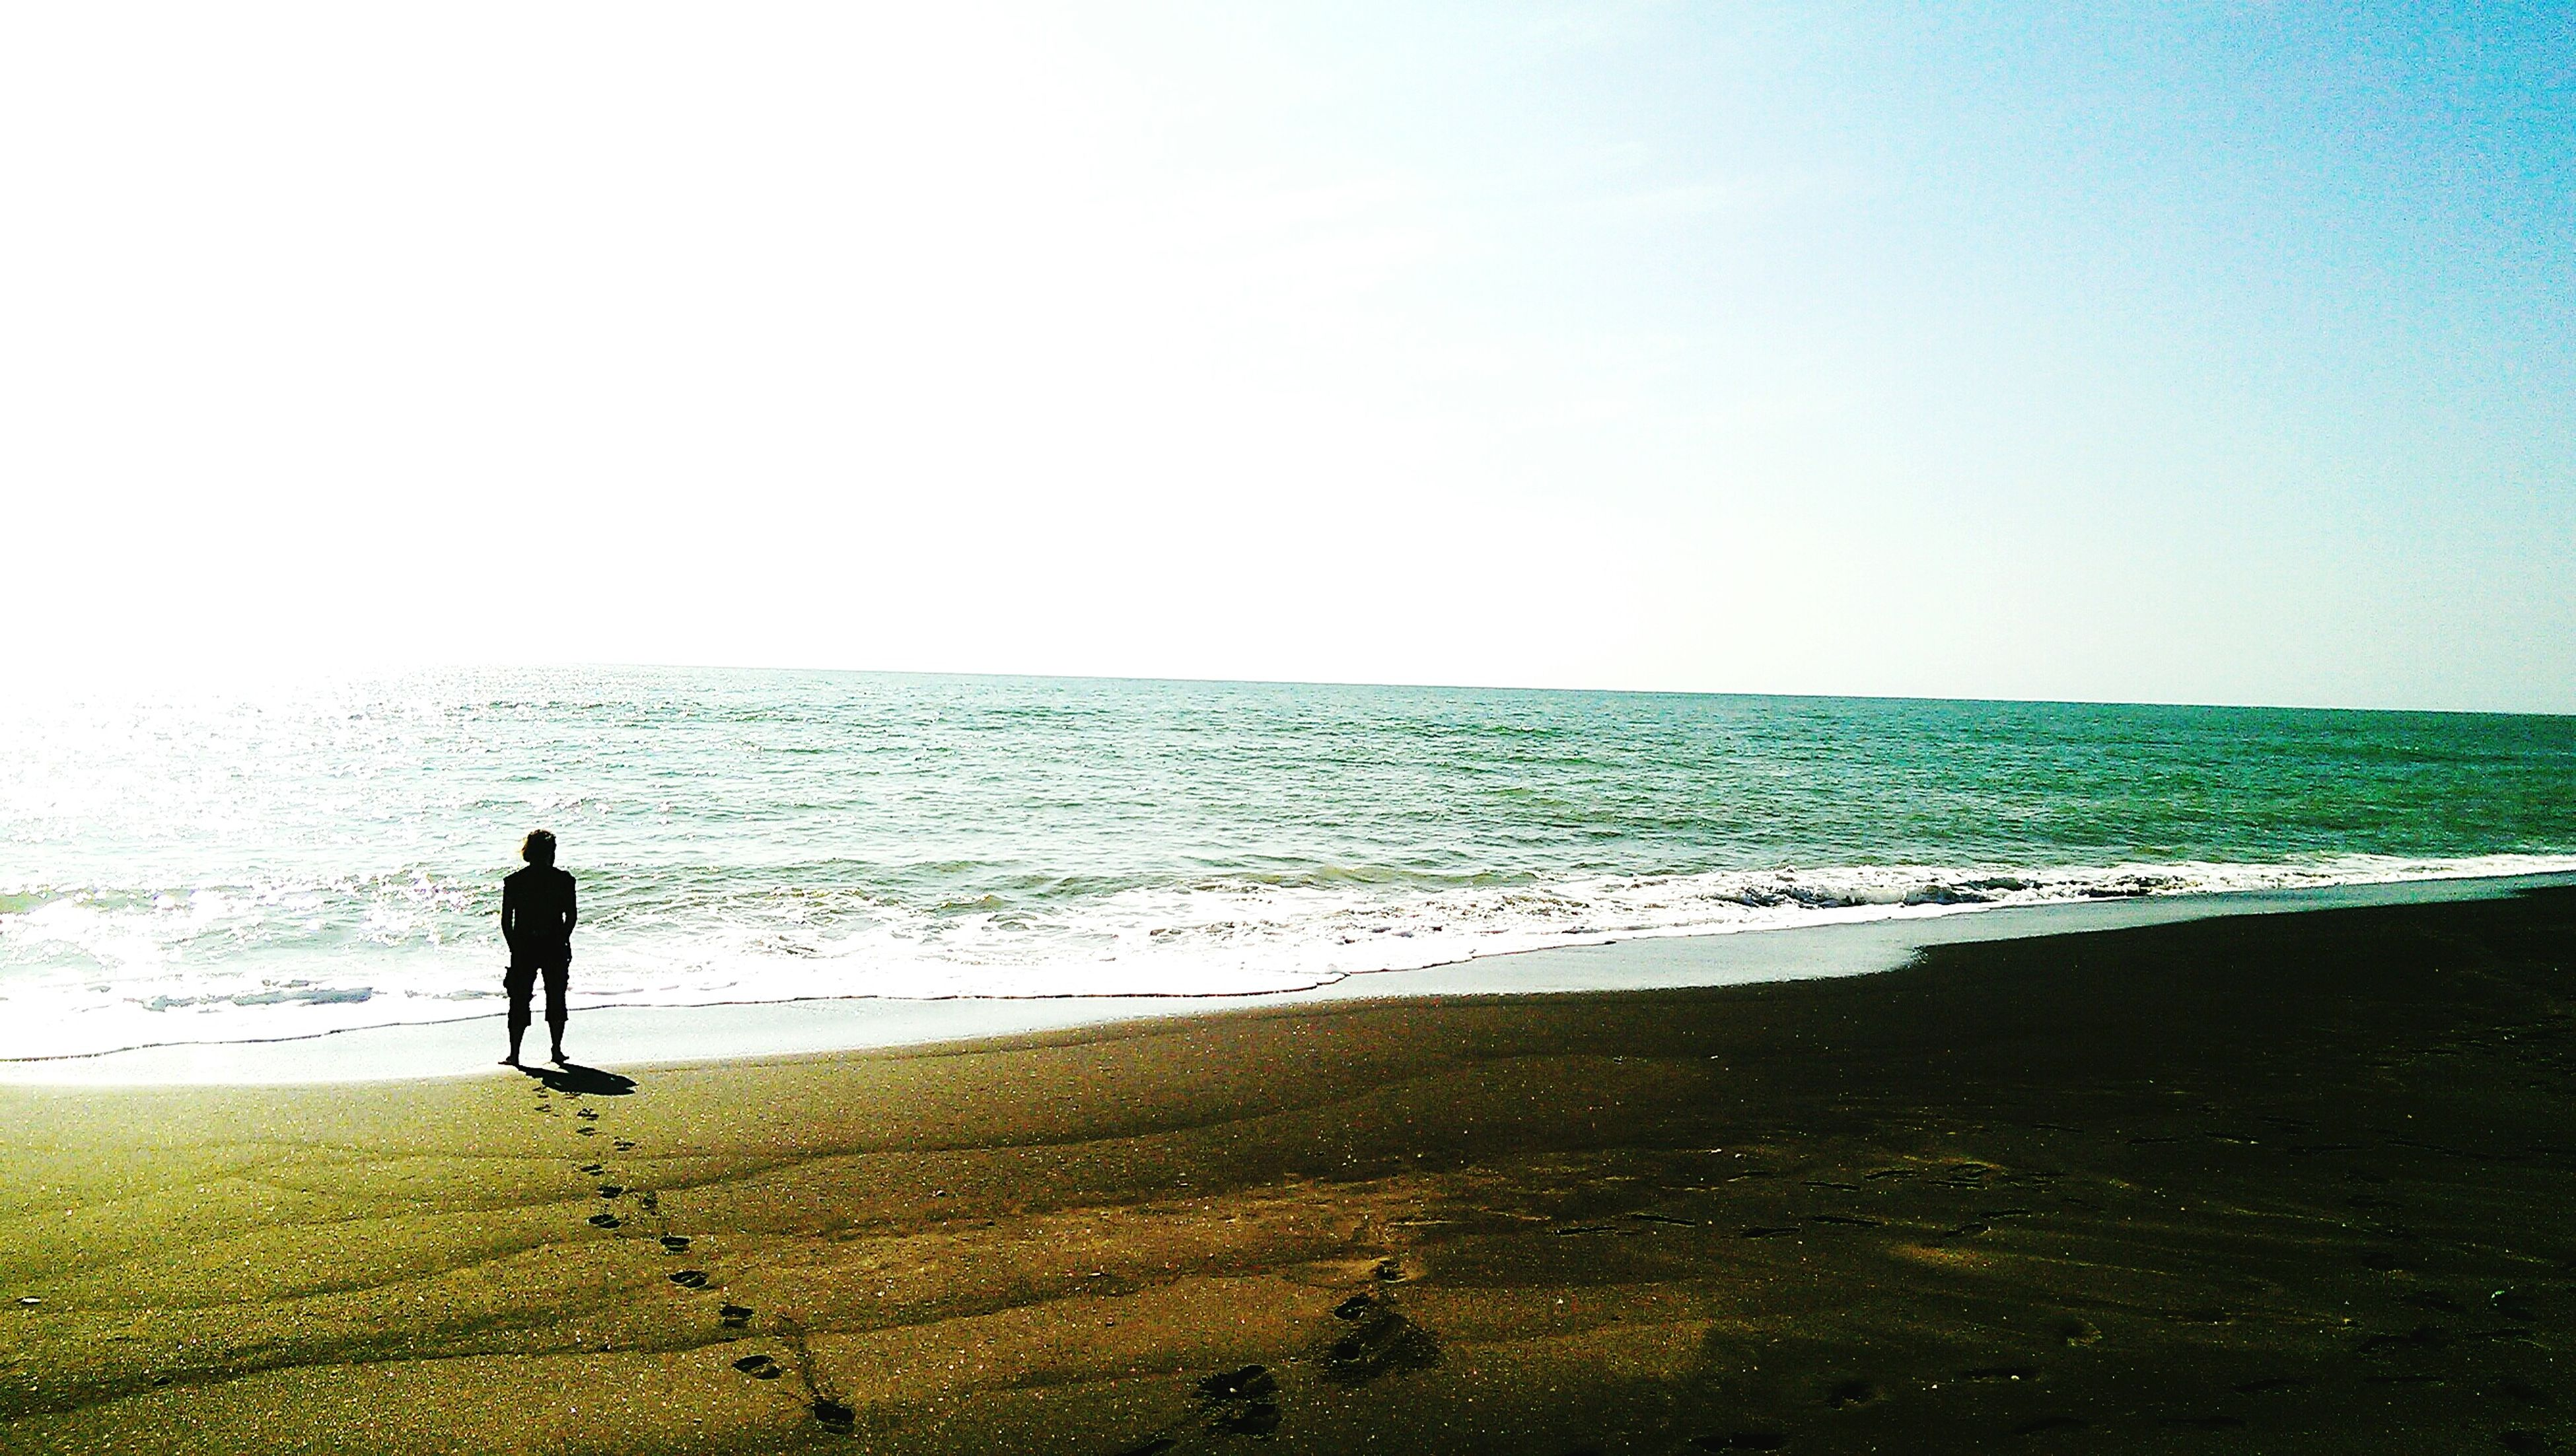 sea, horizon over water, water, beach, full length, standing, clear sky, lifestyles, leisure activity, copy space, men, scenics, walking, tranquil scene, rear view, shore, tranquility, beauty in nature